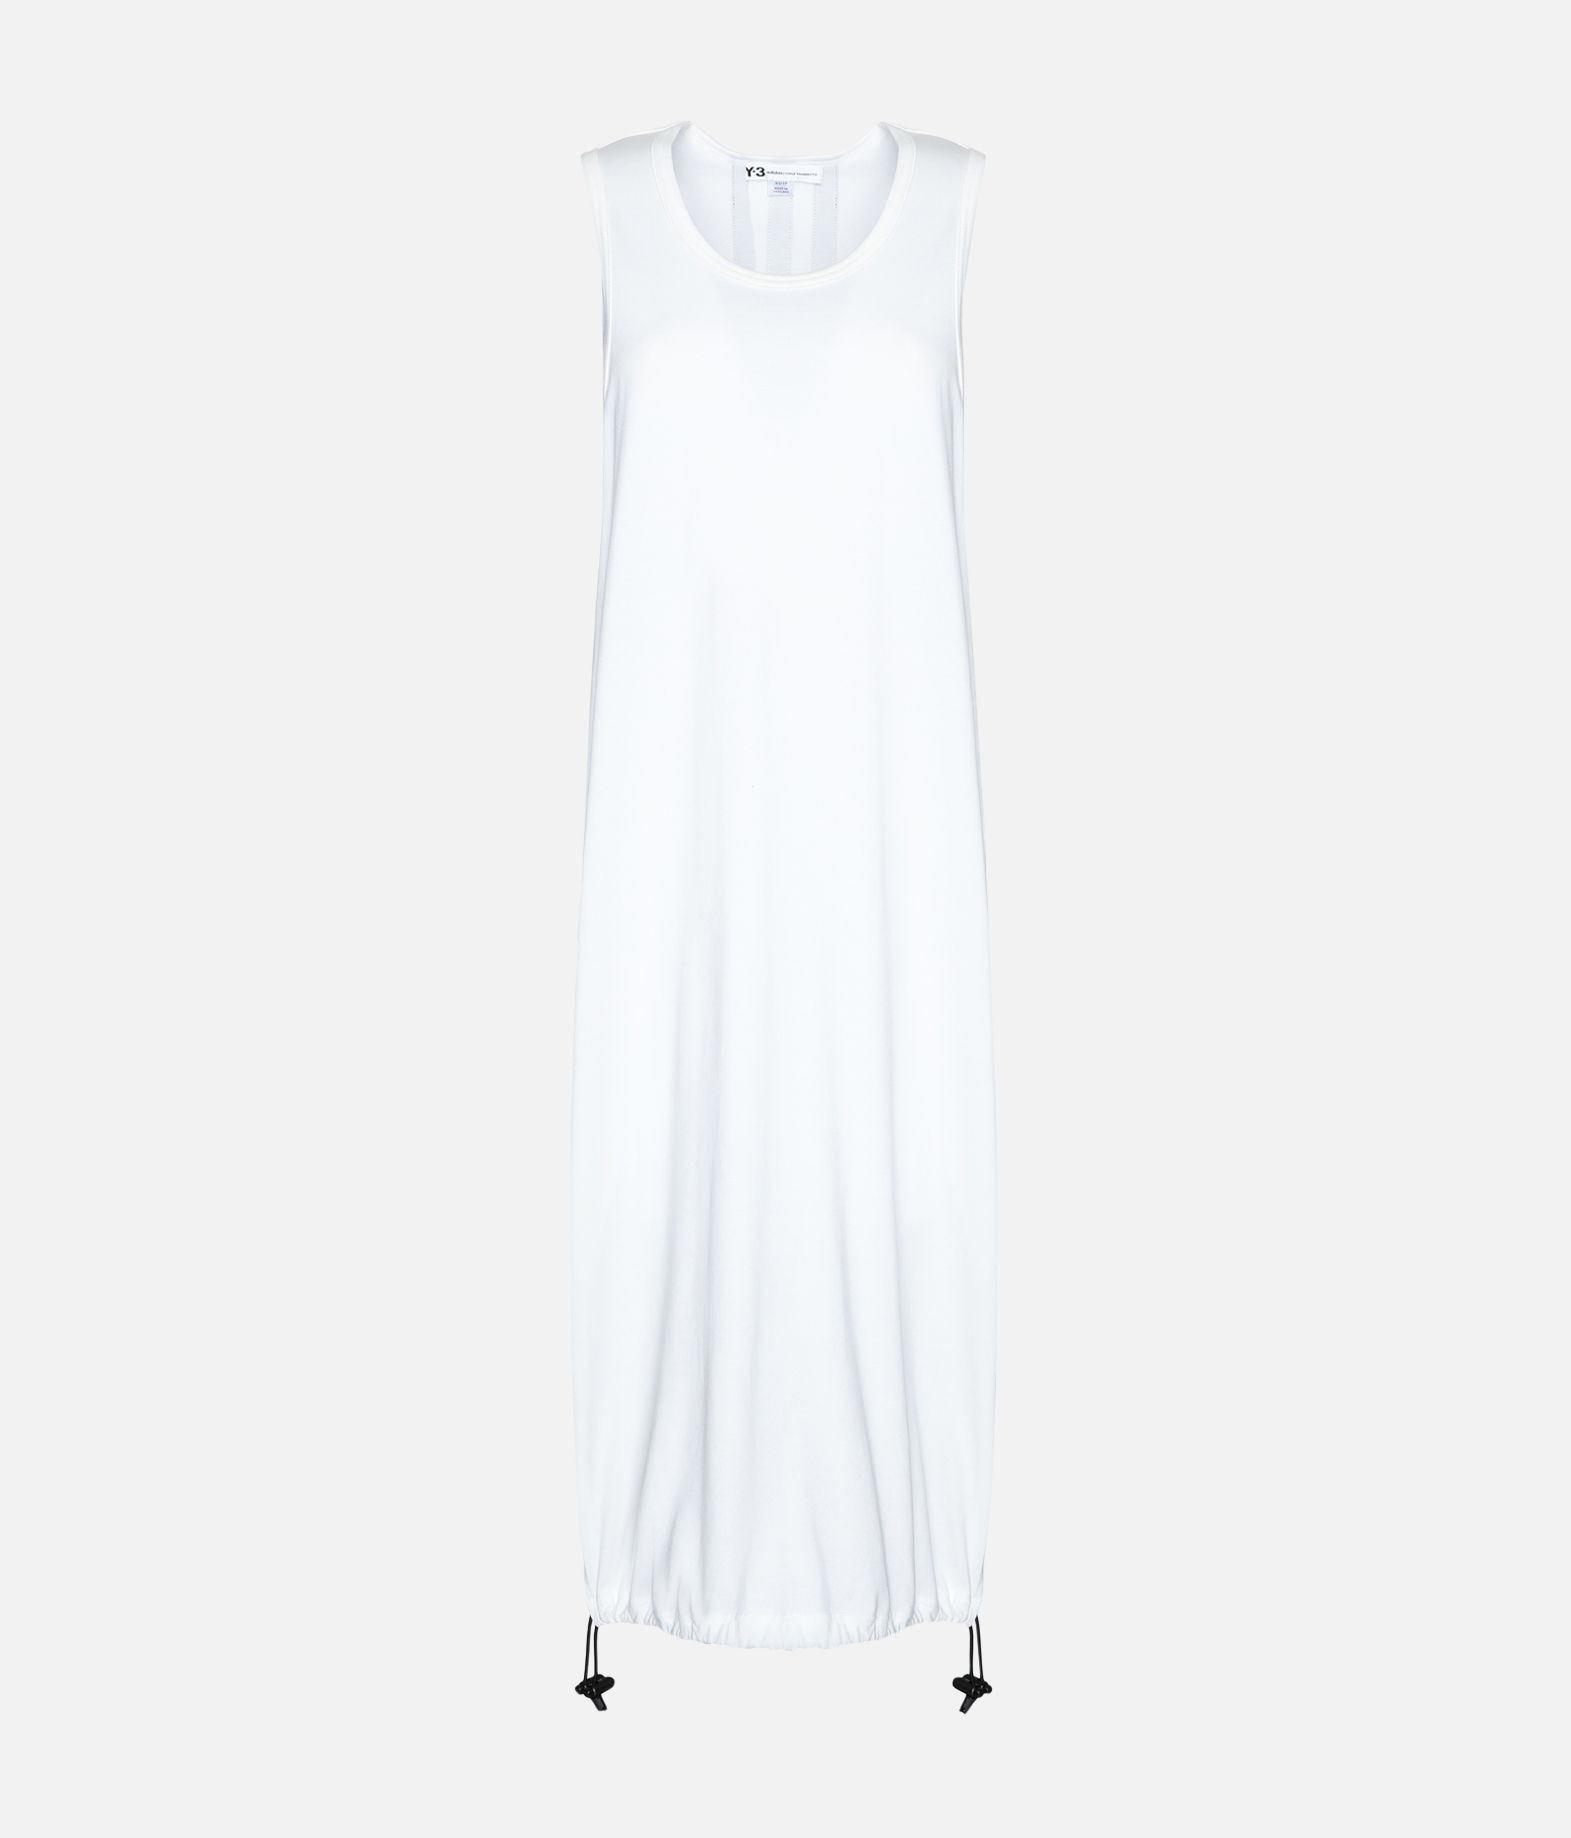 Y-3 Y-3 Drawstring Long Tank Top Sleeveless t-shirt Woman f